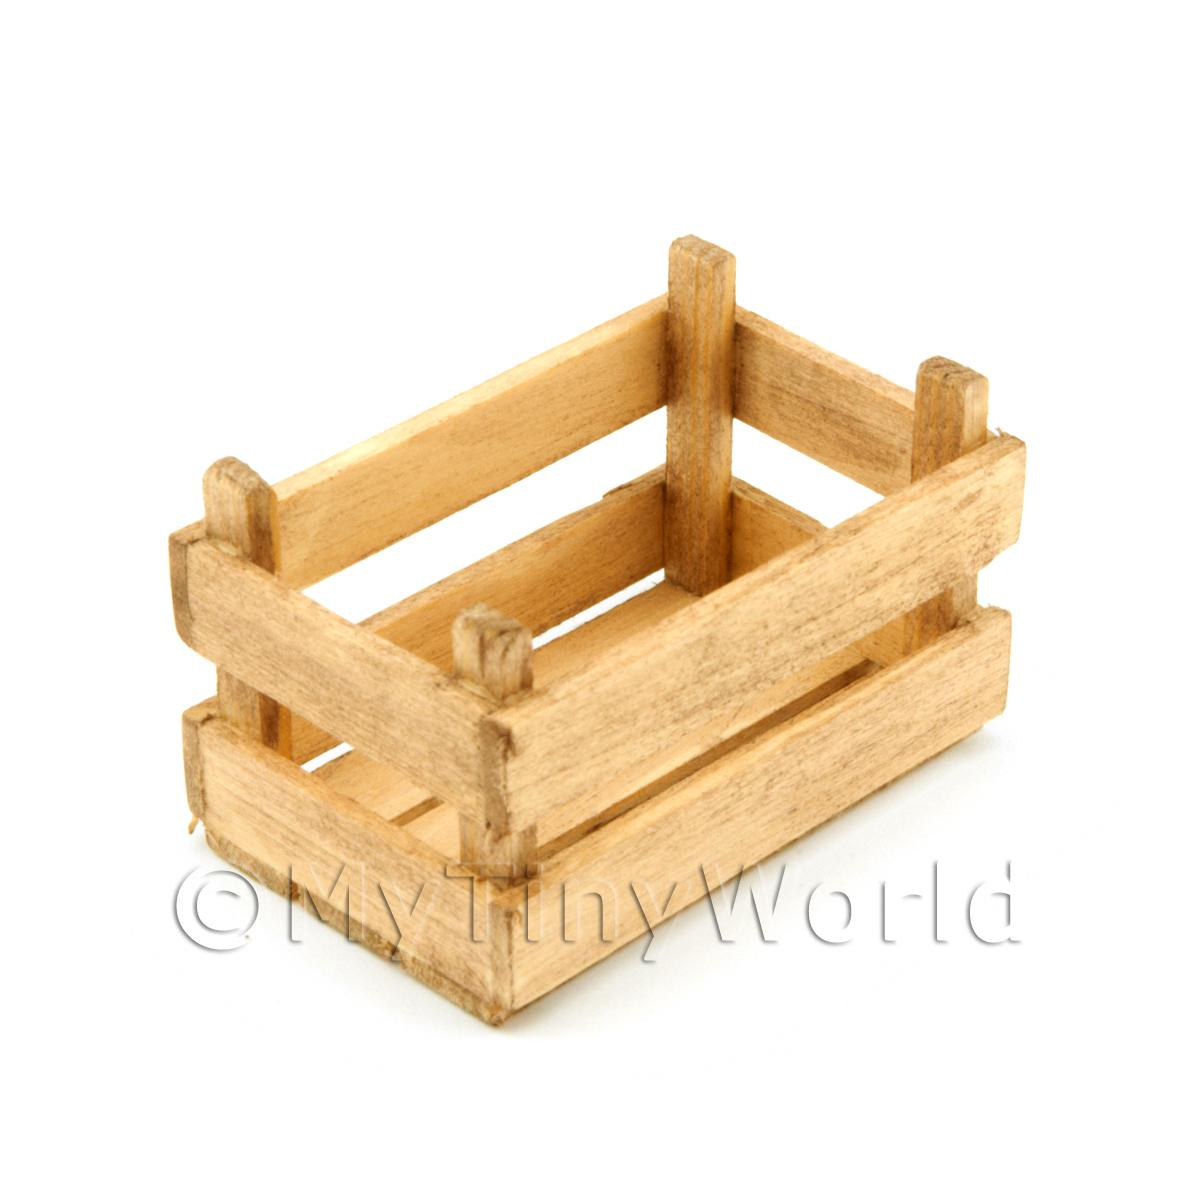 Dolls House Miniature Large Aged Slatted Wood Vegetable Crate